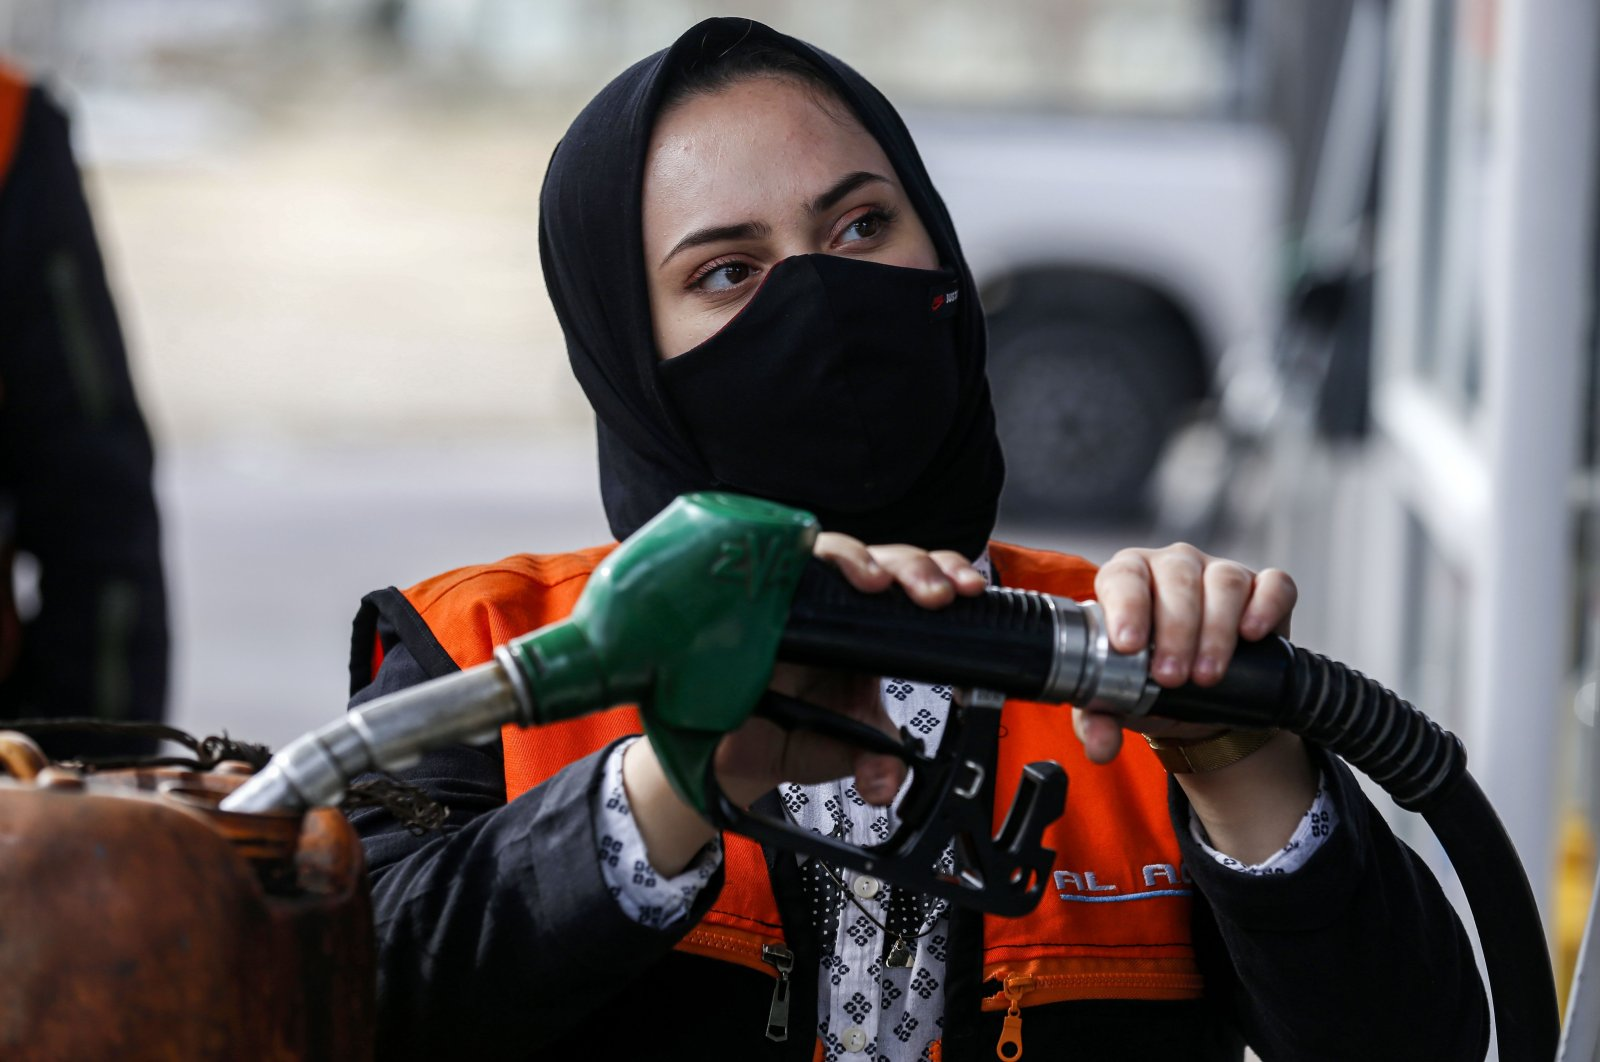 Salma al-Najjar, a 15-year-old Palestinian who works at a gas station to help her family earn income, adds fuel into a jerrycan in Khan Yunis in southern Gaza Strip, Palestine, Nov. 24, 2020. (AFP Photo)